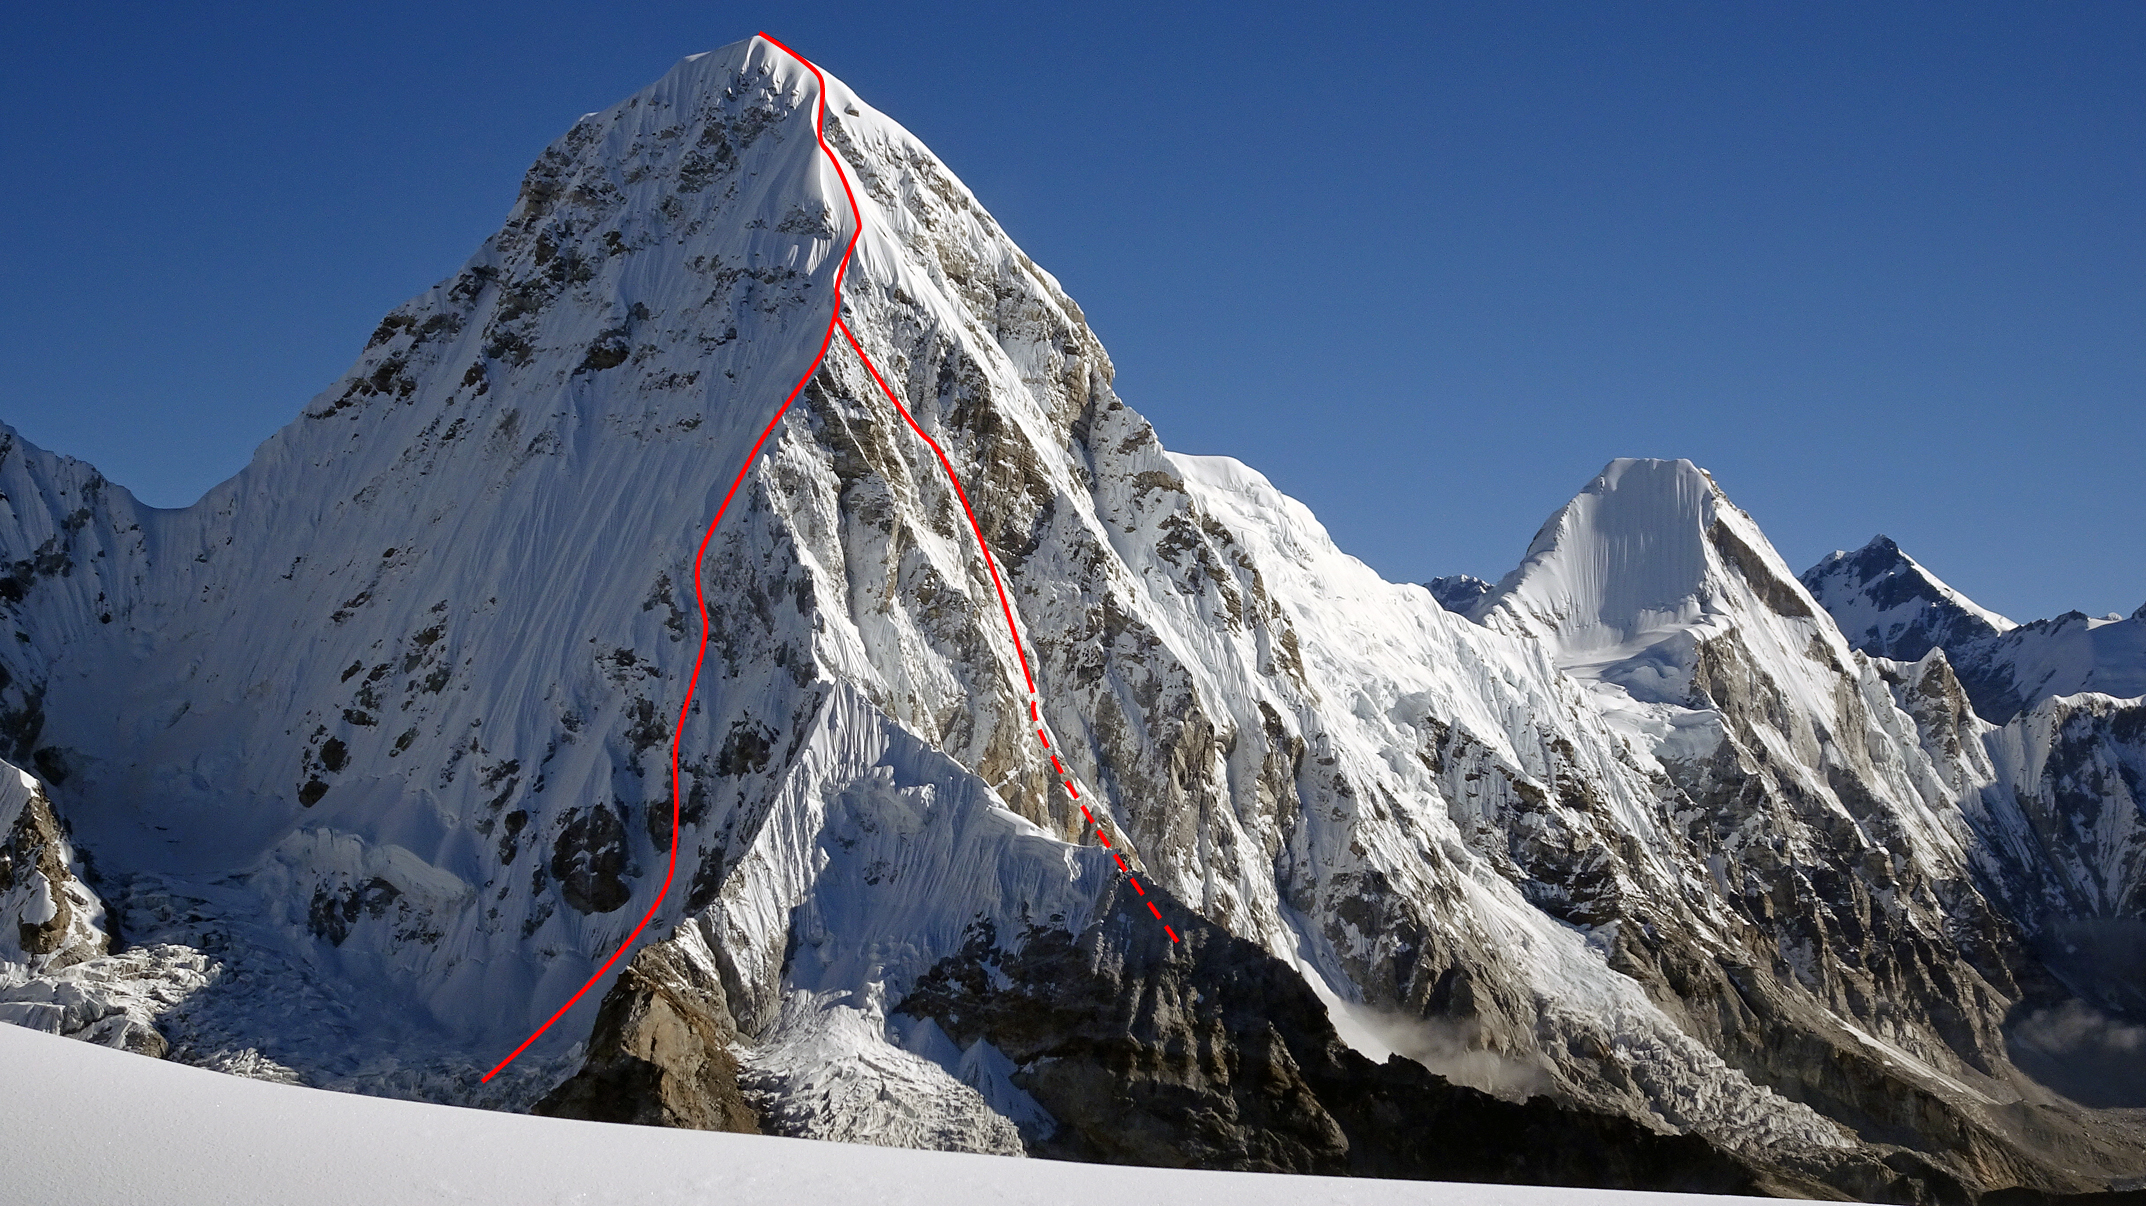 Pumori from the southwest showing the 2018 Romanian ascent (right) on the southeast face and their descent of the southwest ridge and west face. Where the two lines meet is the site of their highest bivouac.